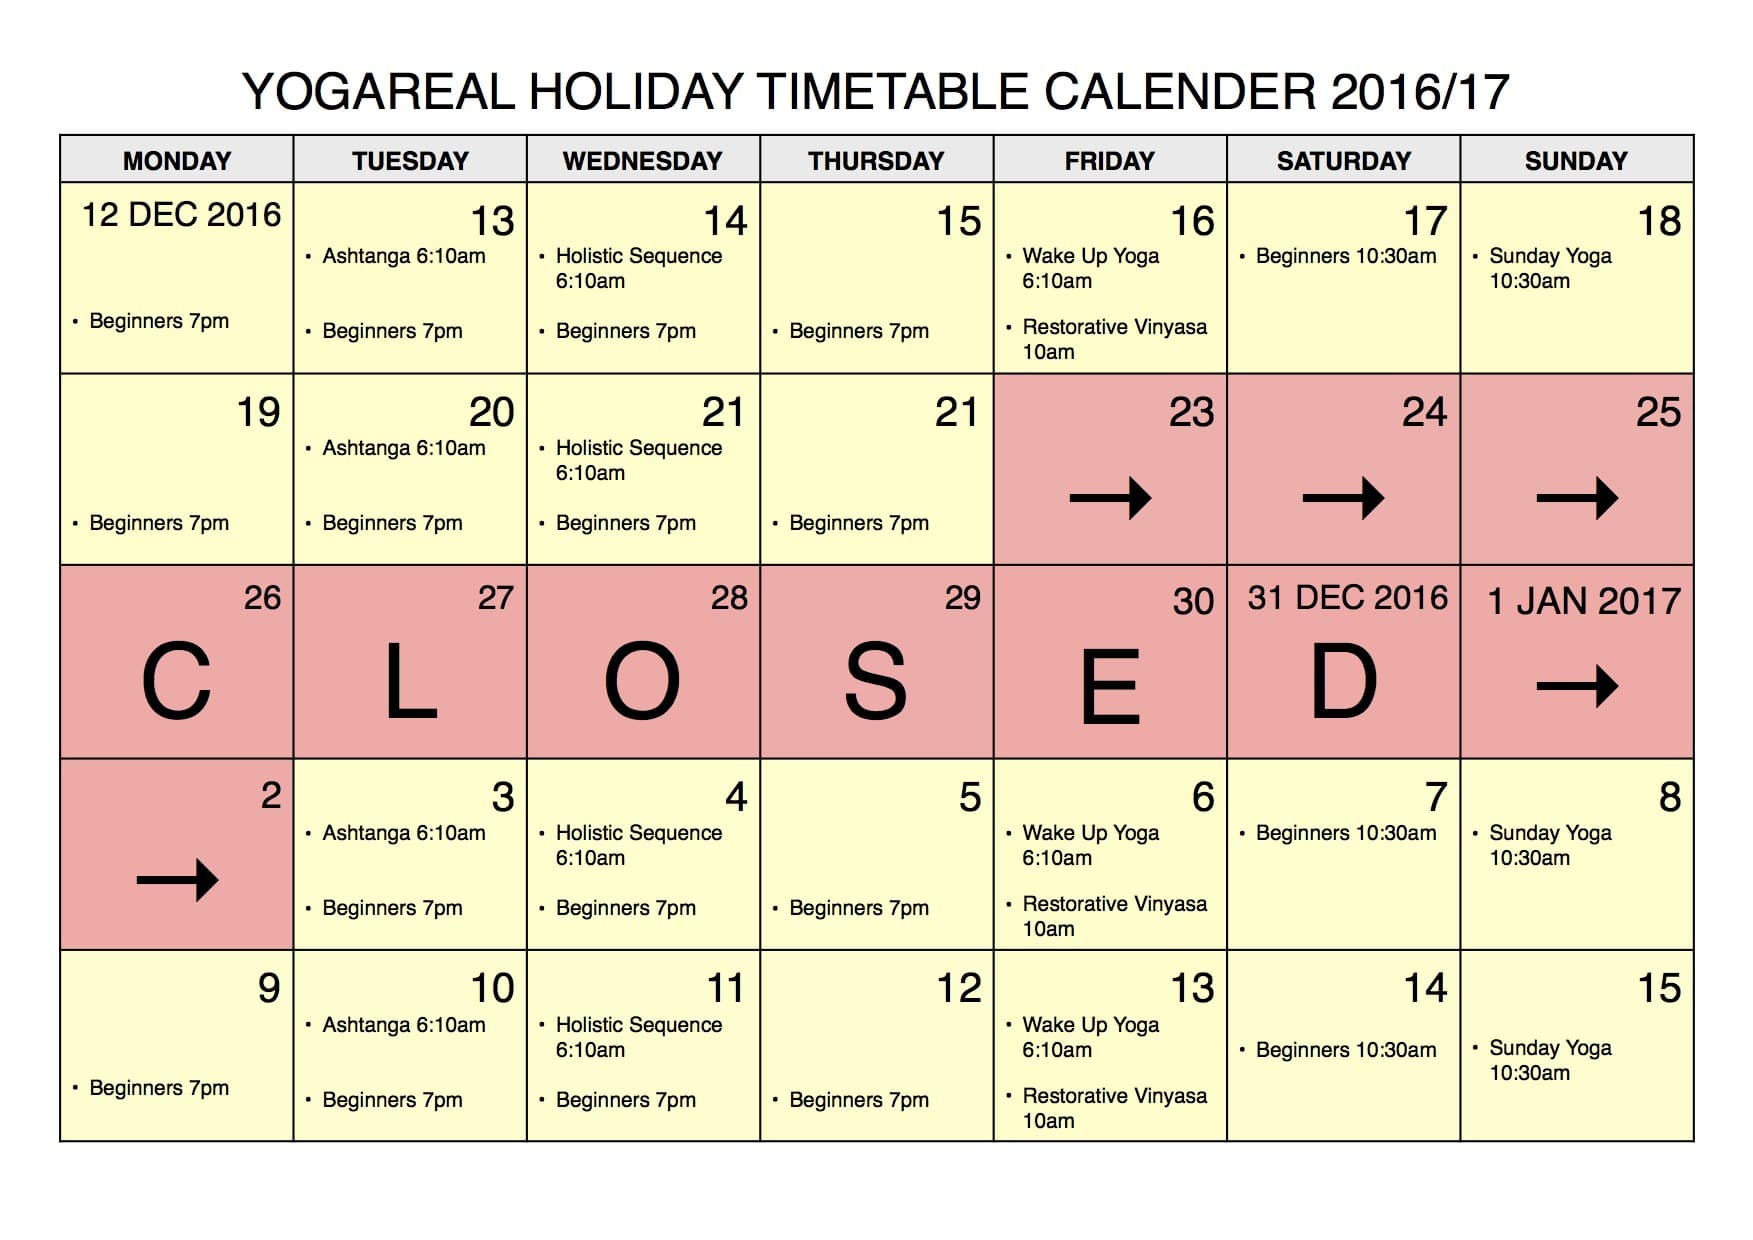 Yogareal-Holiday-Calender-20162017-copy.jpg